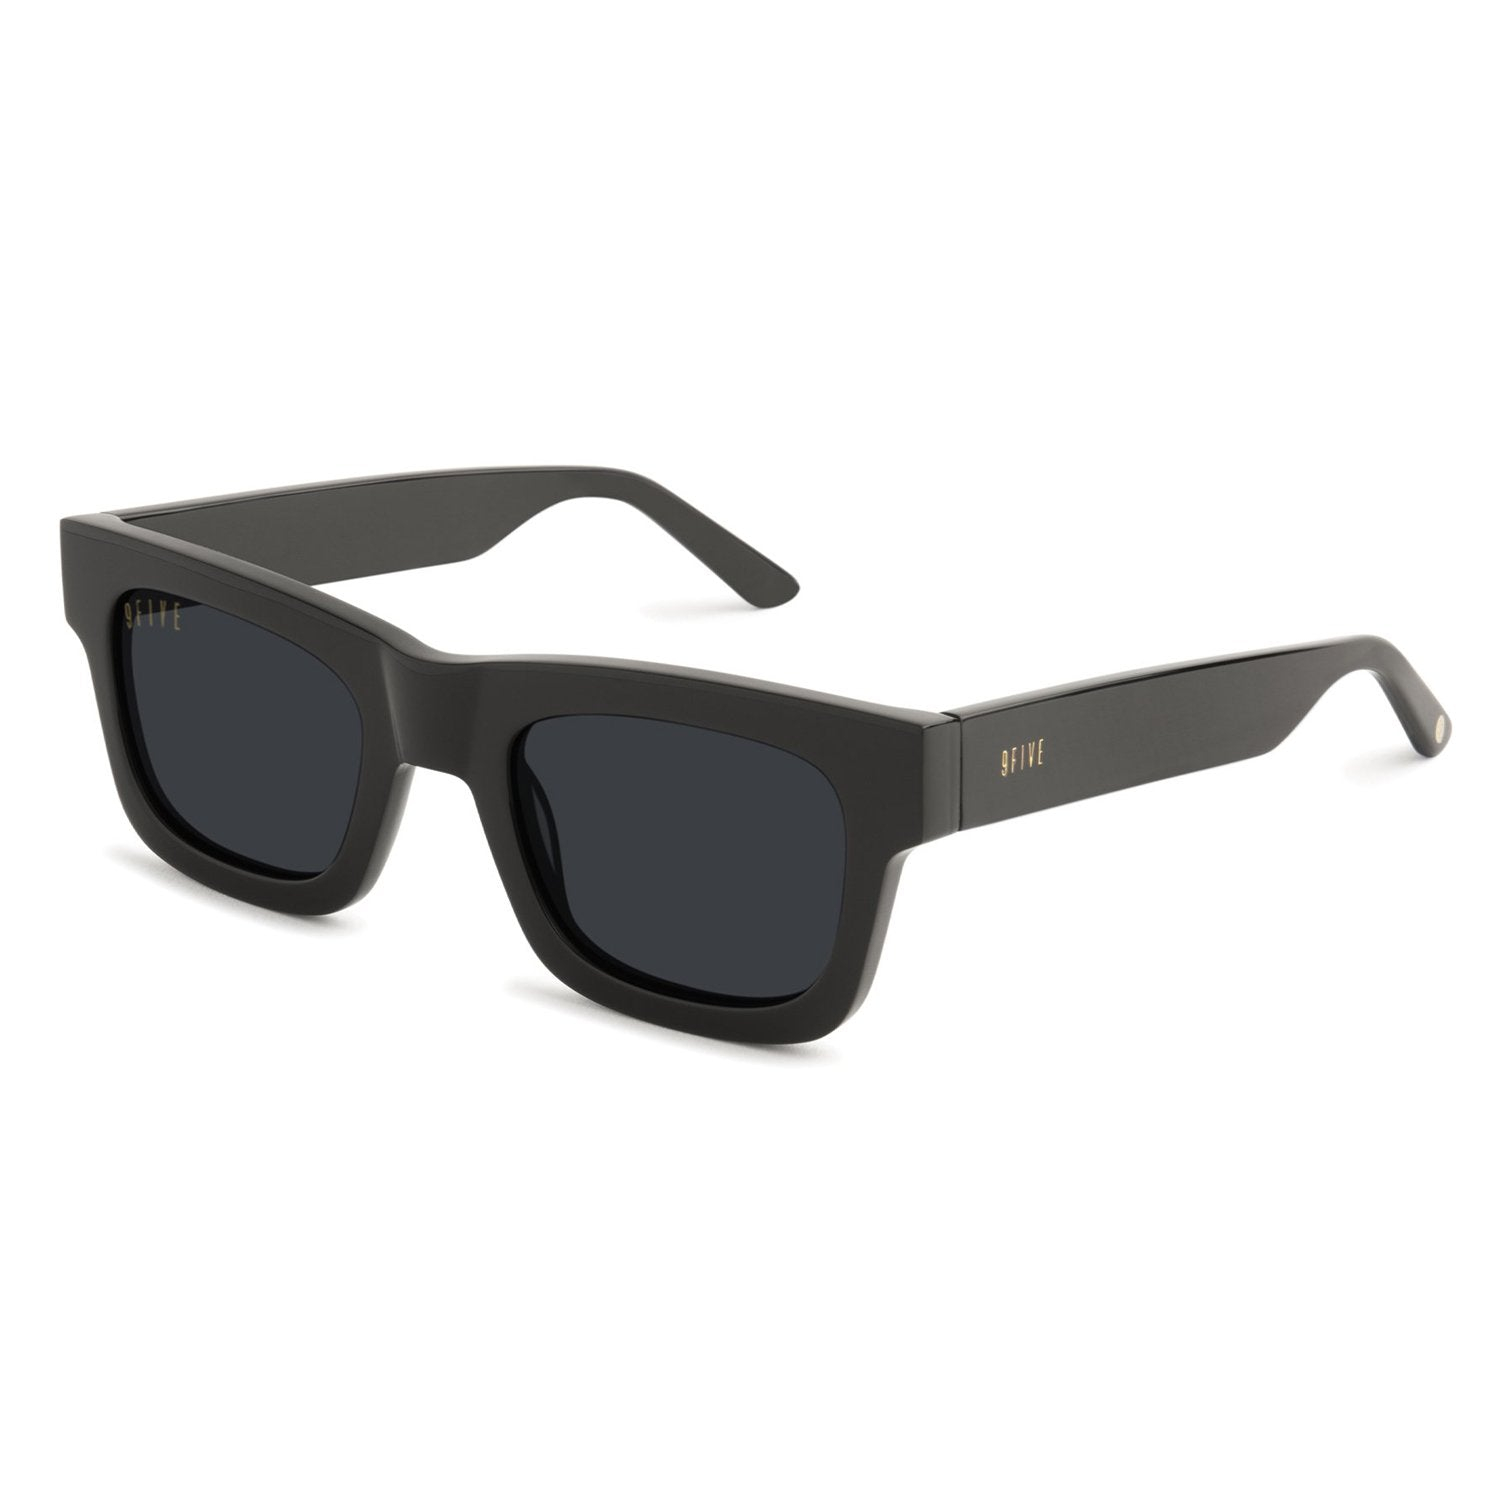 9FIVE Ayden Sunglasses - Black Product Photo #1